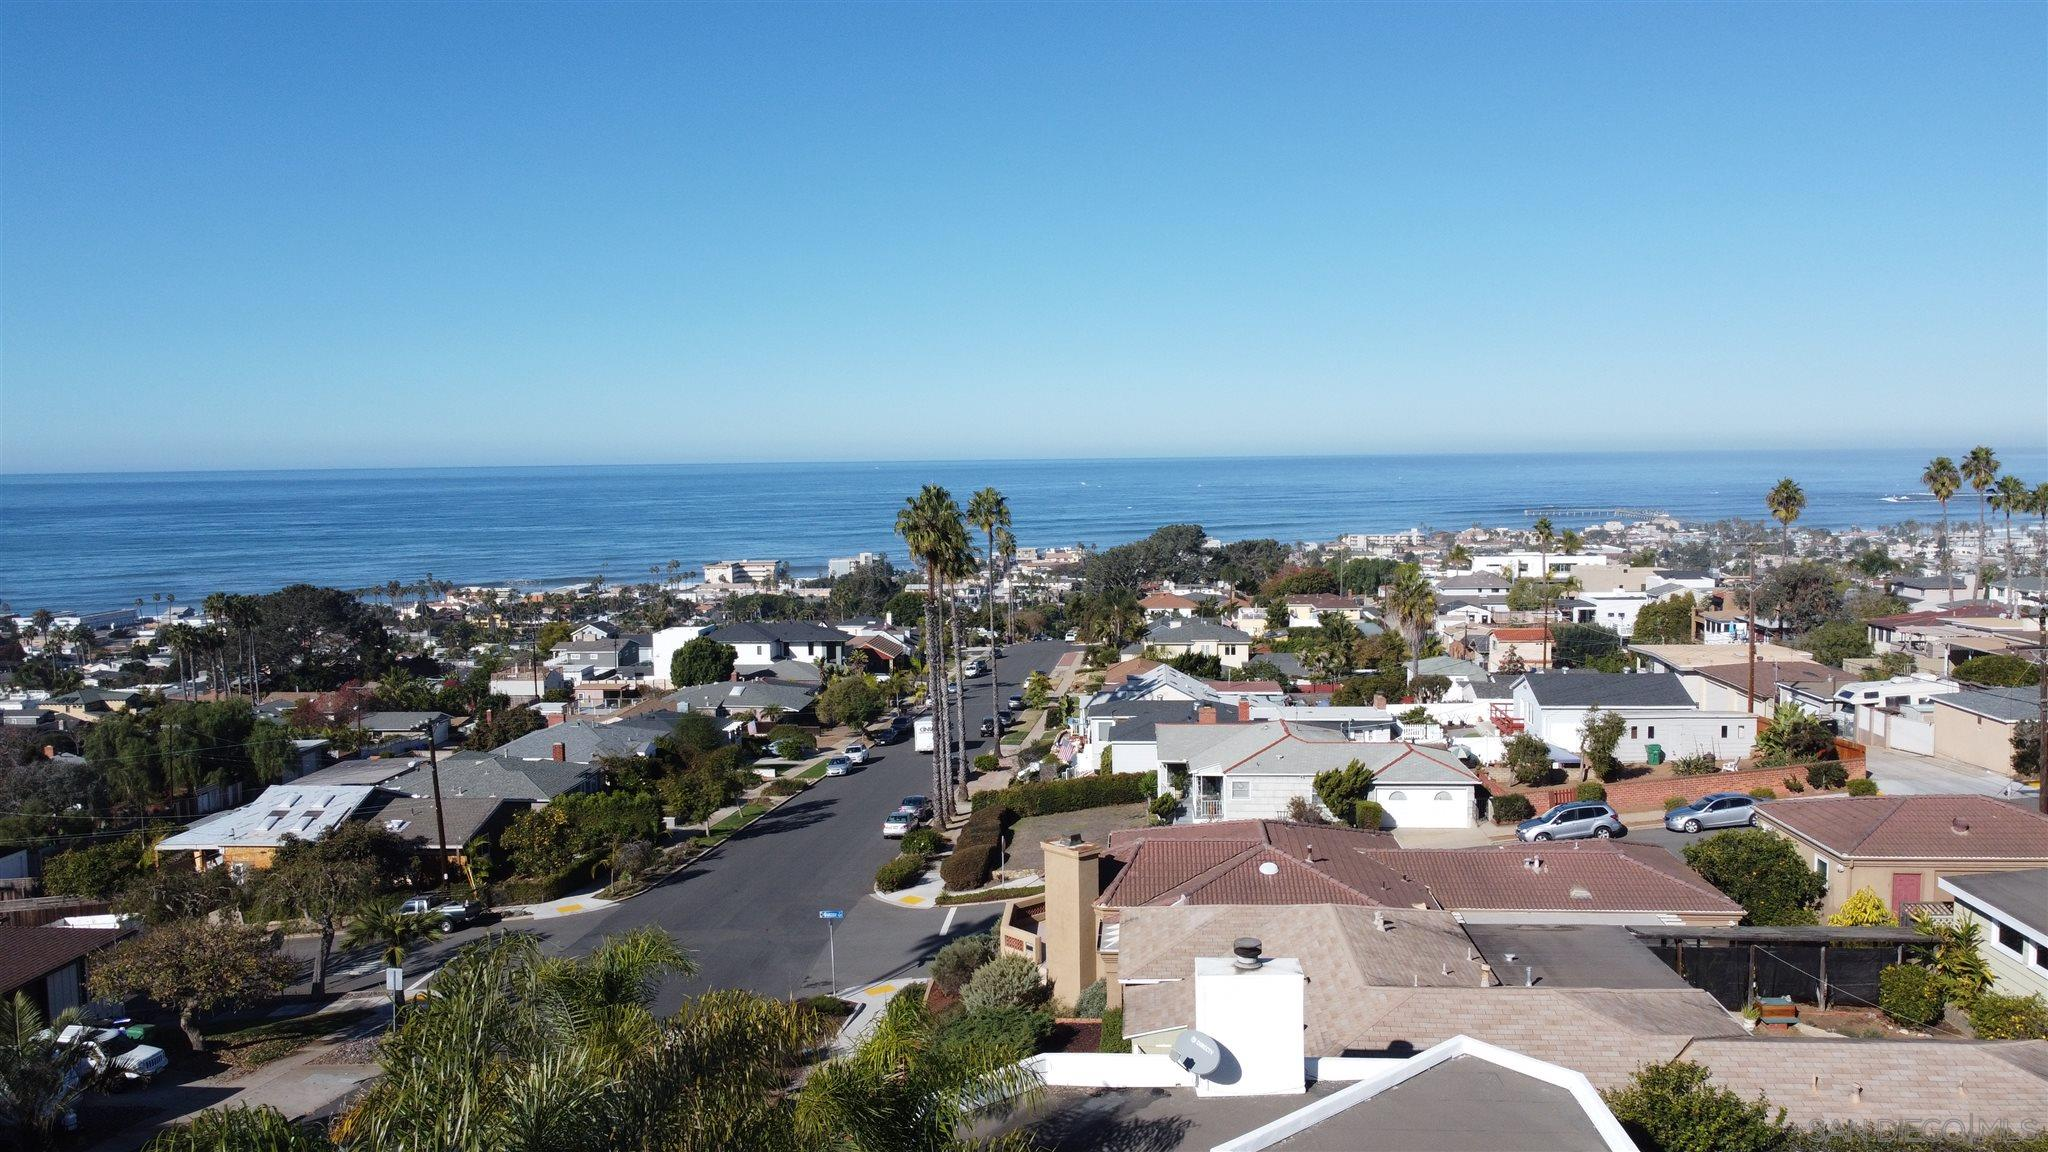 WOW! Fantastic opportunity to complete this beautiful home and personalize it. Lender owned and ready to sell. Call all of your builder clients to come and see this amazing property. Incredible ocean views from the Master bedroom and roof deck. Great neighborhood on ocean-side of Pt. Loma. Use this link to access building plans and video of site: